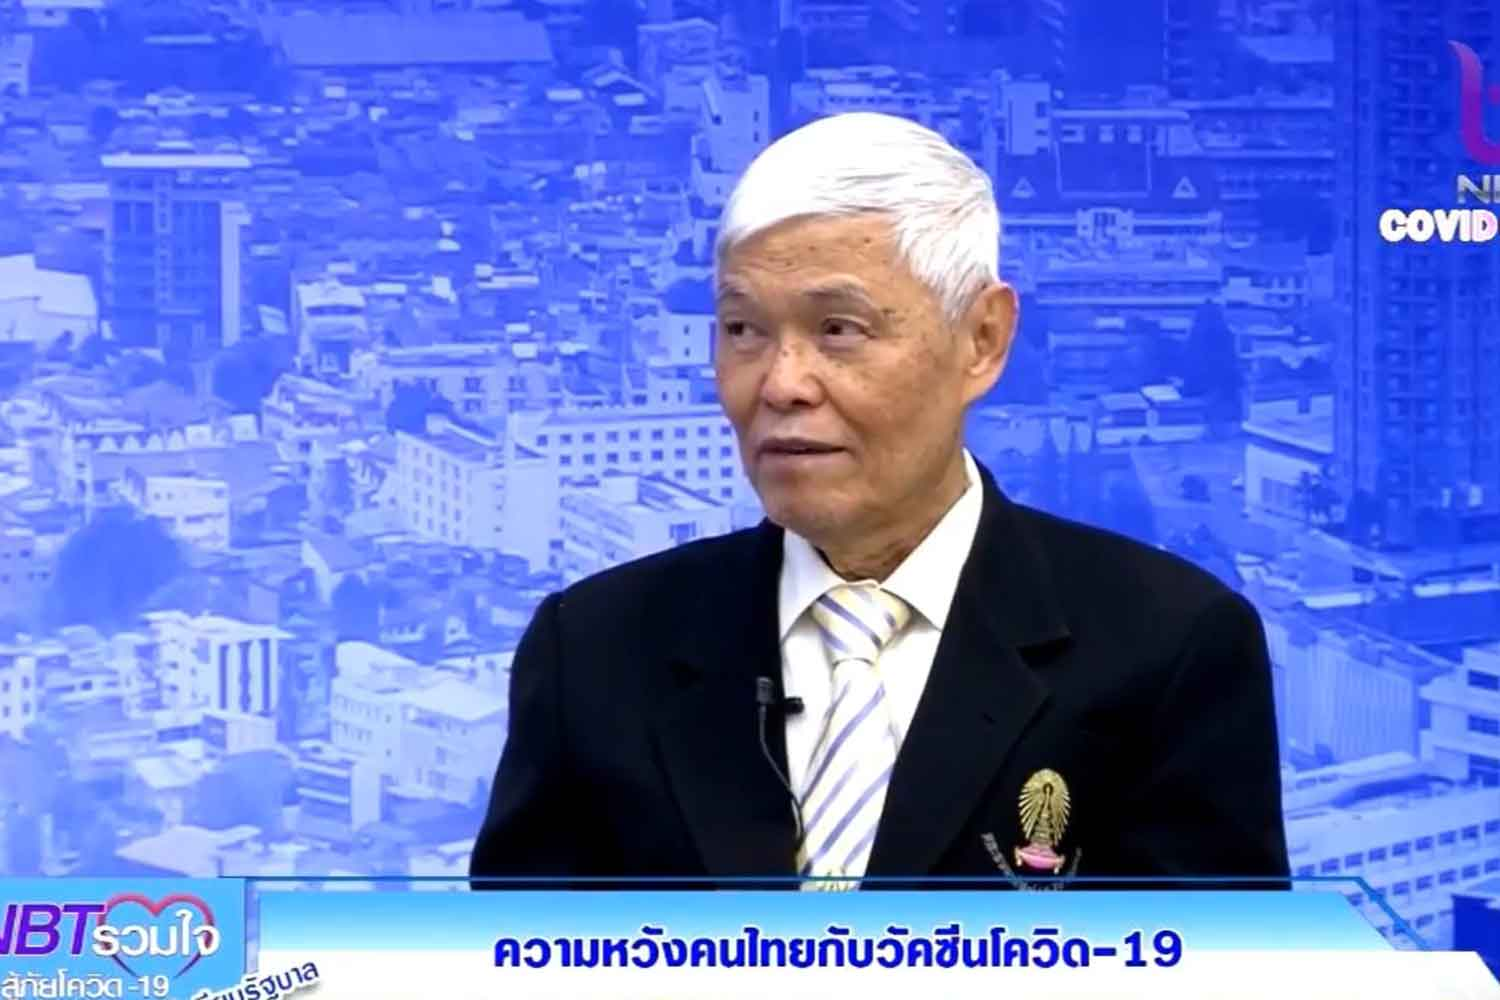 Dr Yong Poovorawan, chief of the Center of Excellence in Clinical Virology at Chulalongkorn University, during his interview on the National Broadcasting Services of Thailand TV channel on Thursday. (Screenshot from the channel's Facebook page)